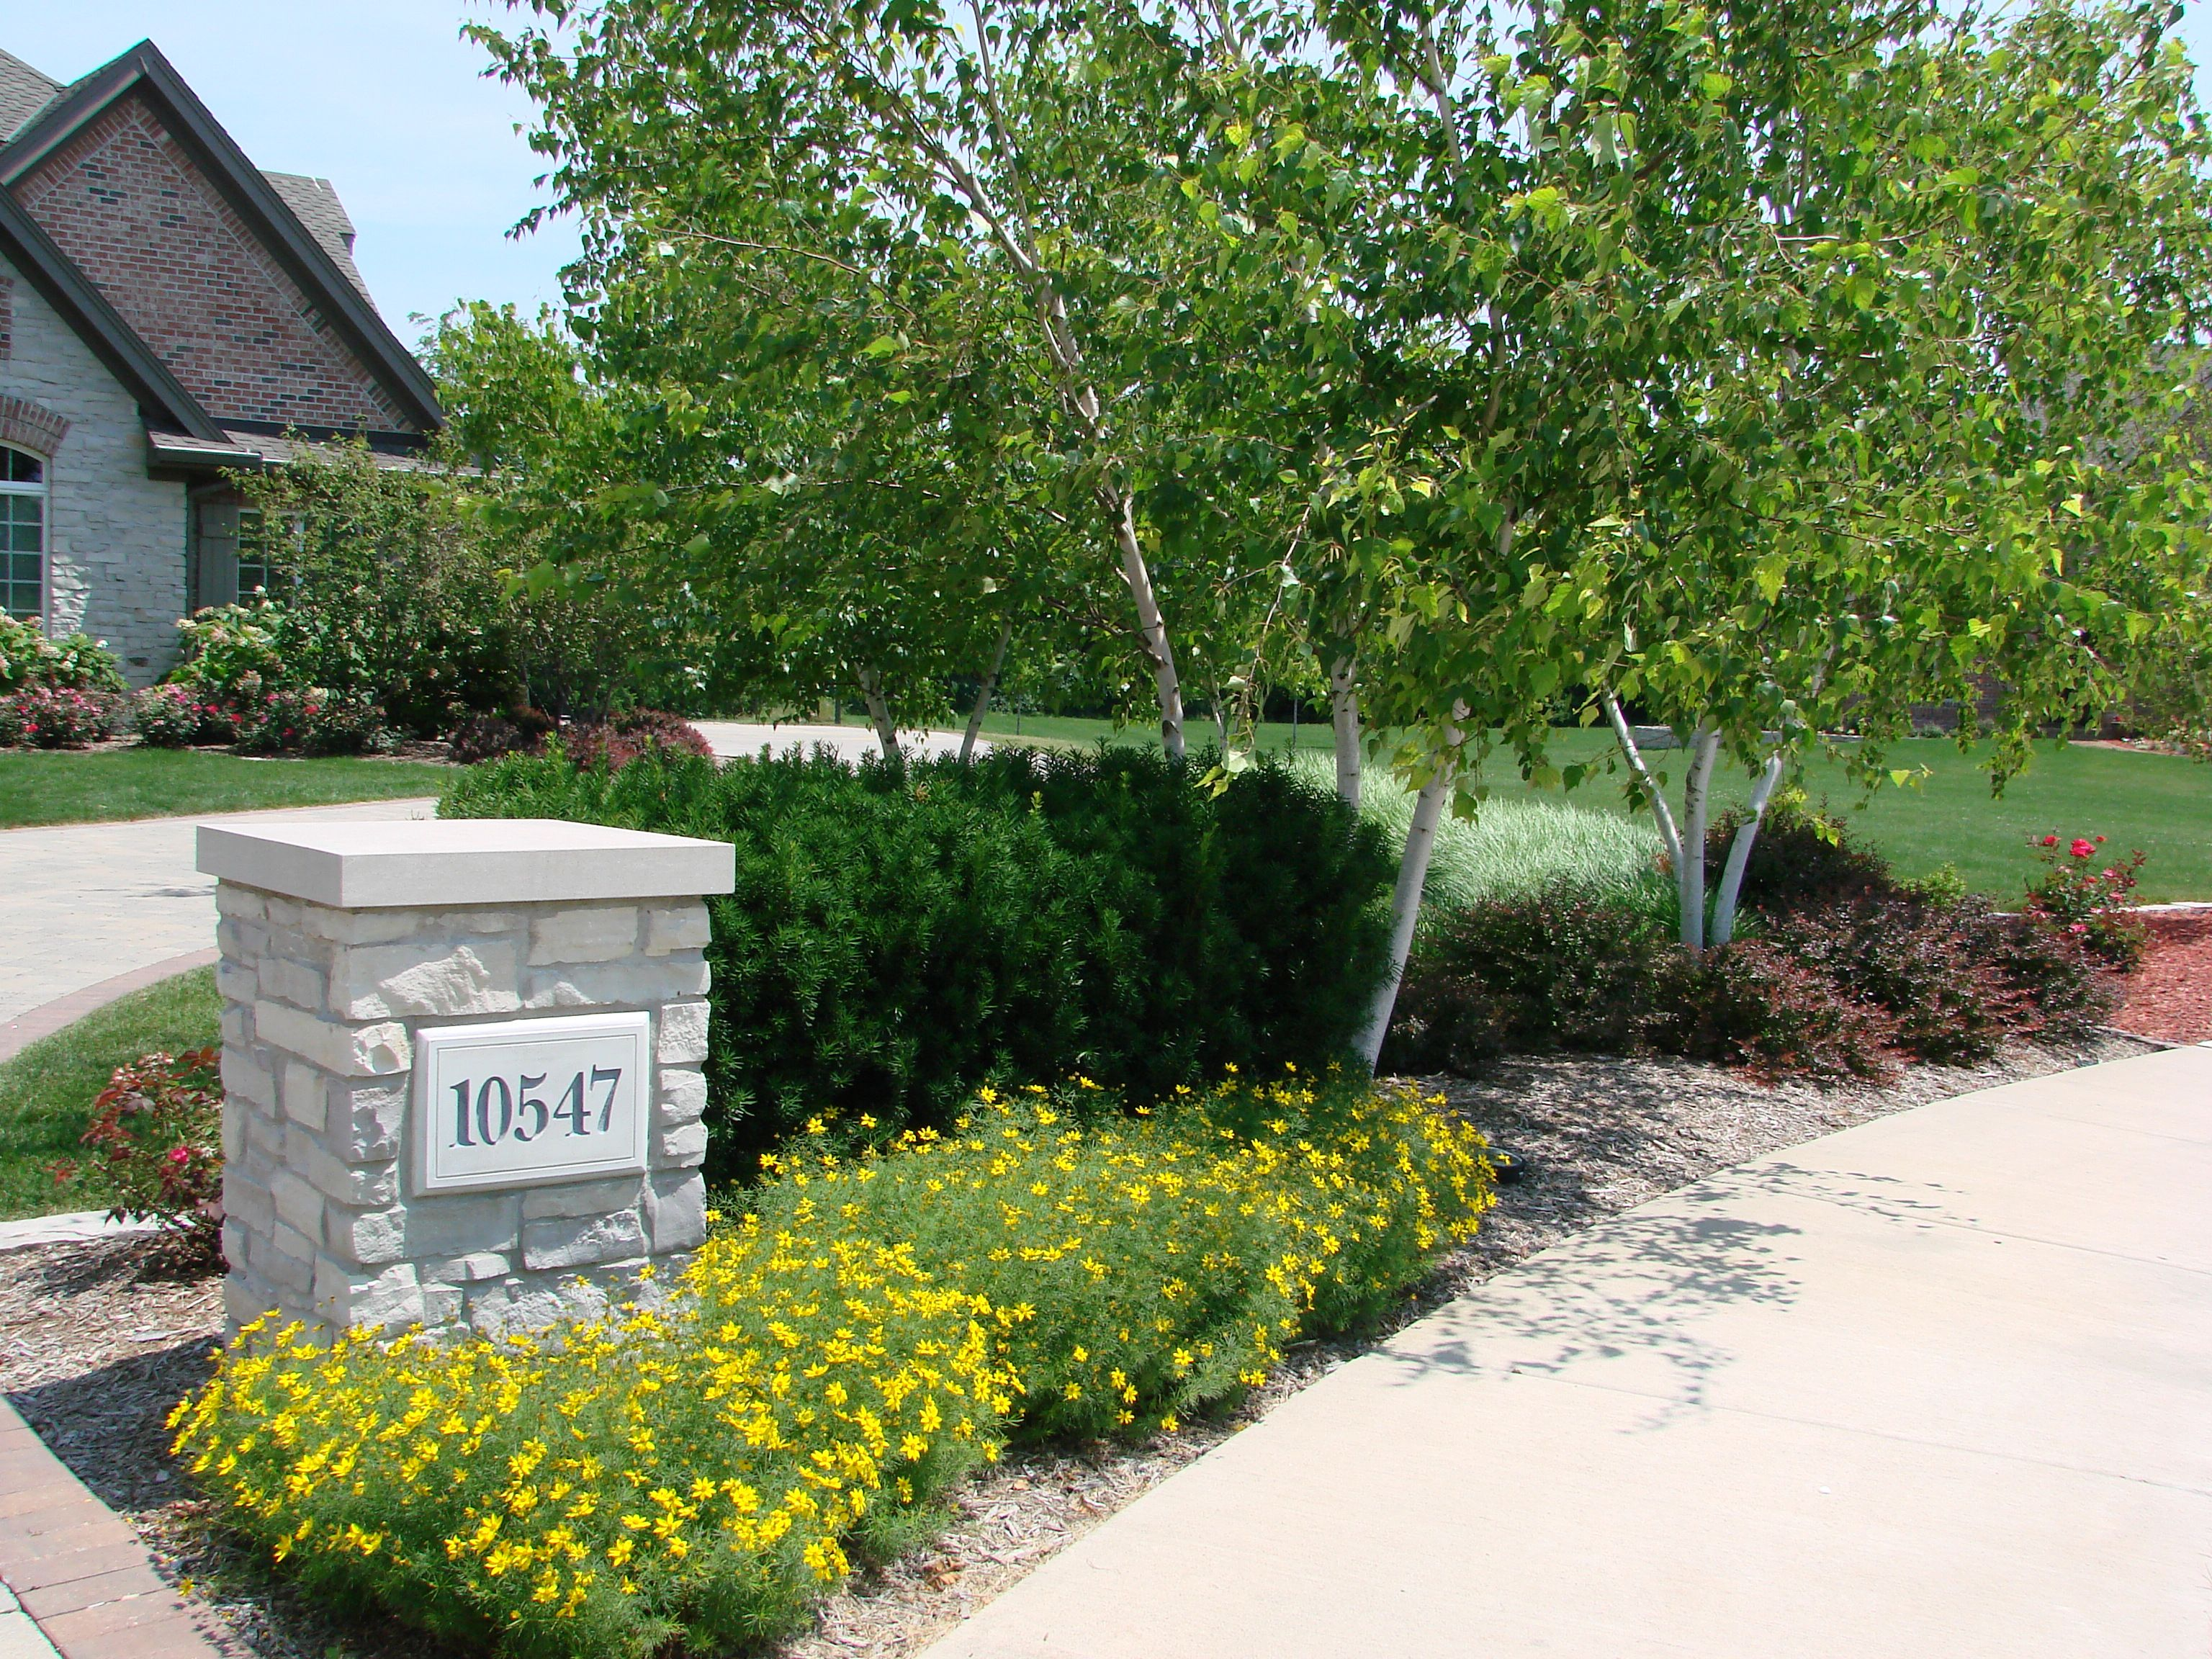 Light Post For Driveway Design Ideas, Pictures, Remodel ... |Driveway Entry Lights